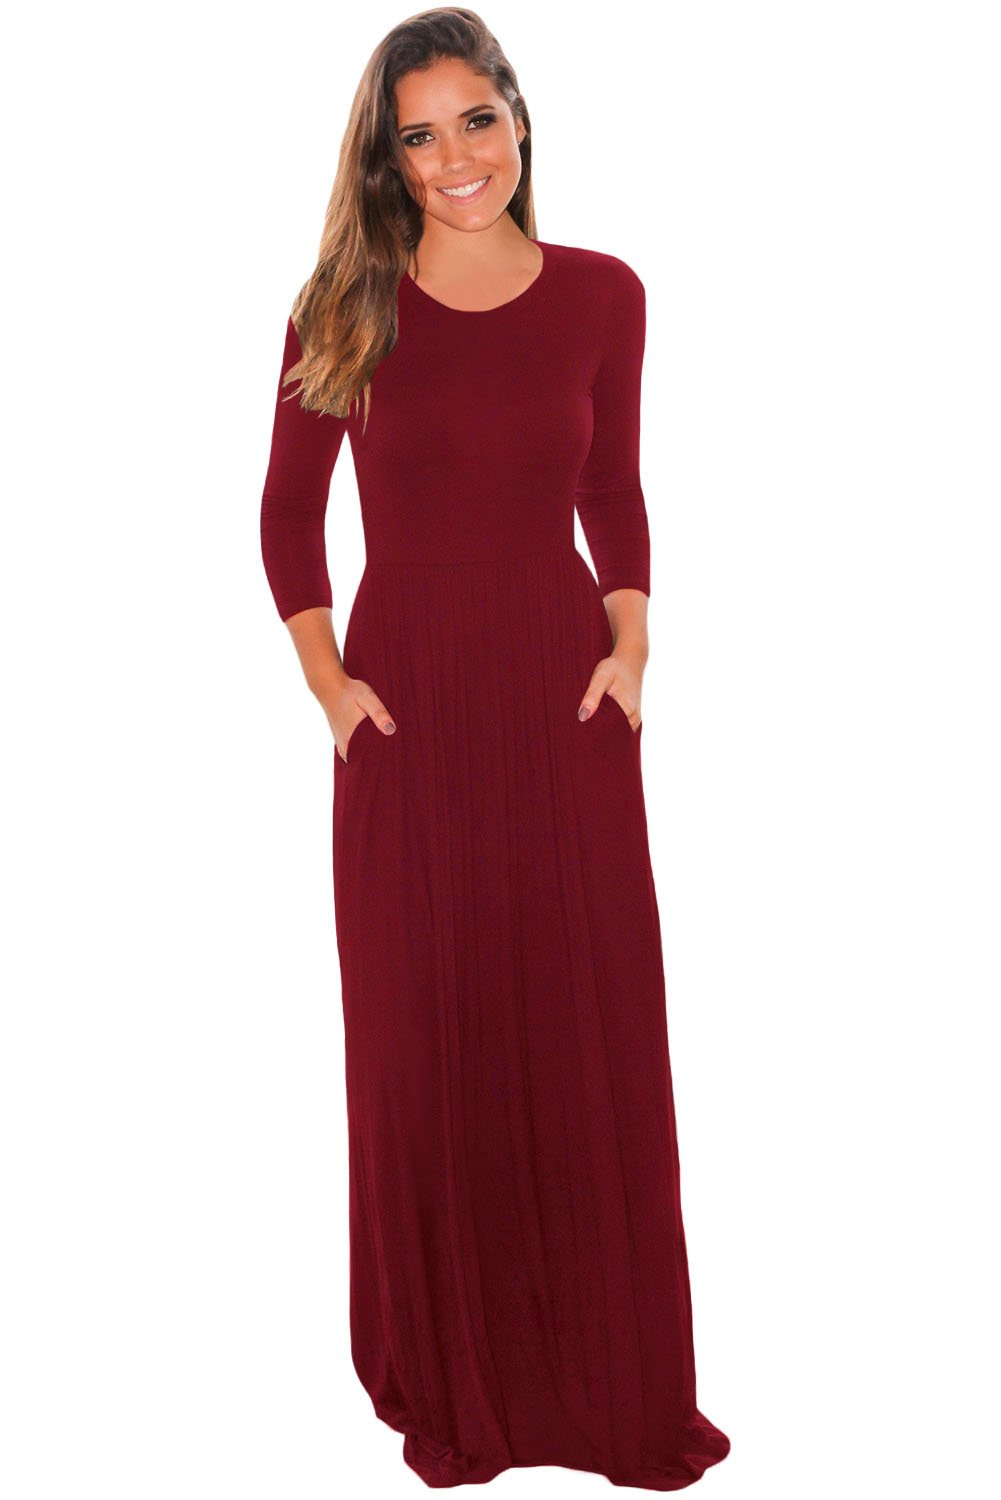 bd8ed5432422 Burgundy Pocket Design 3 4 Sleeves Maxi Dress in 2019